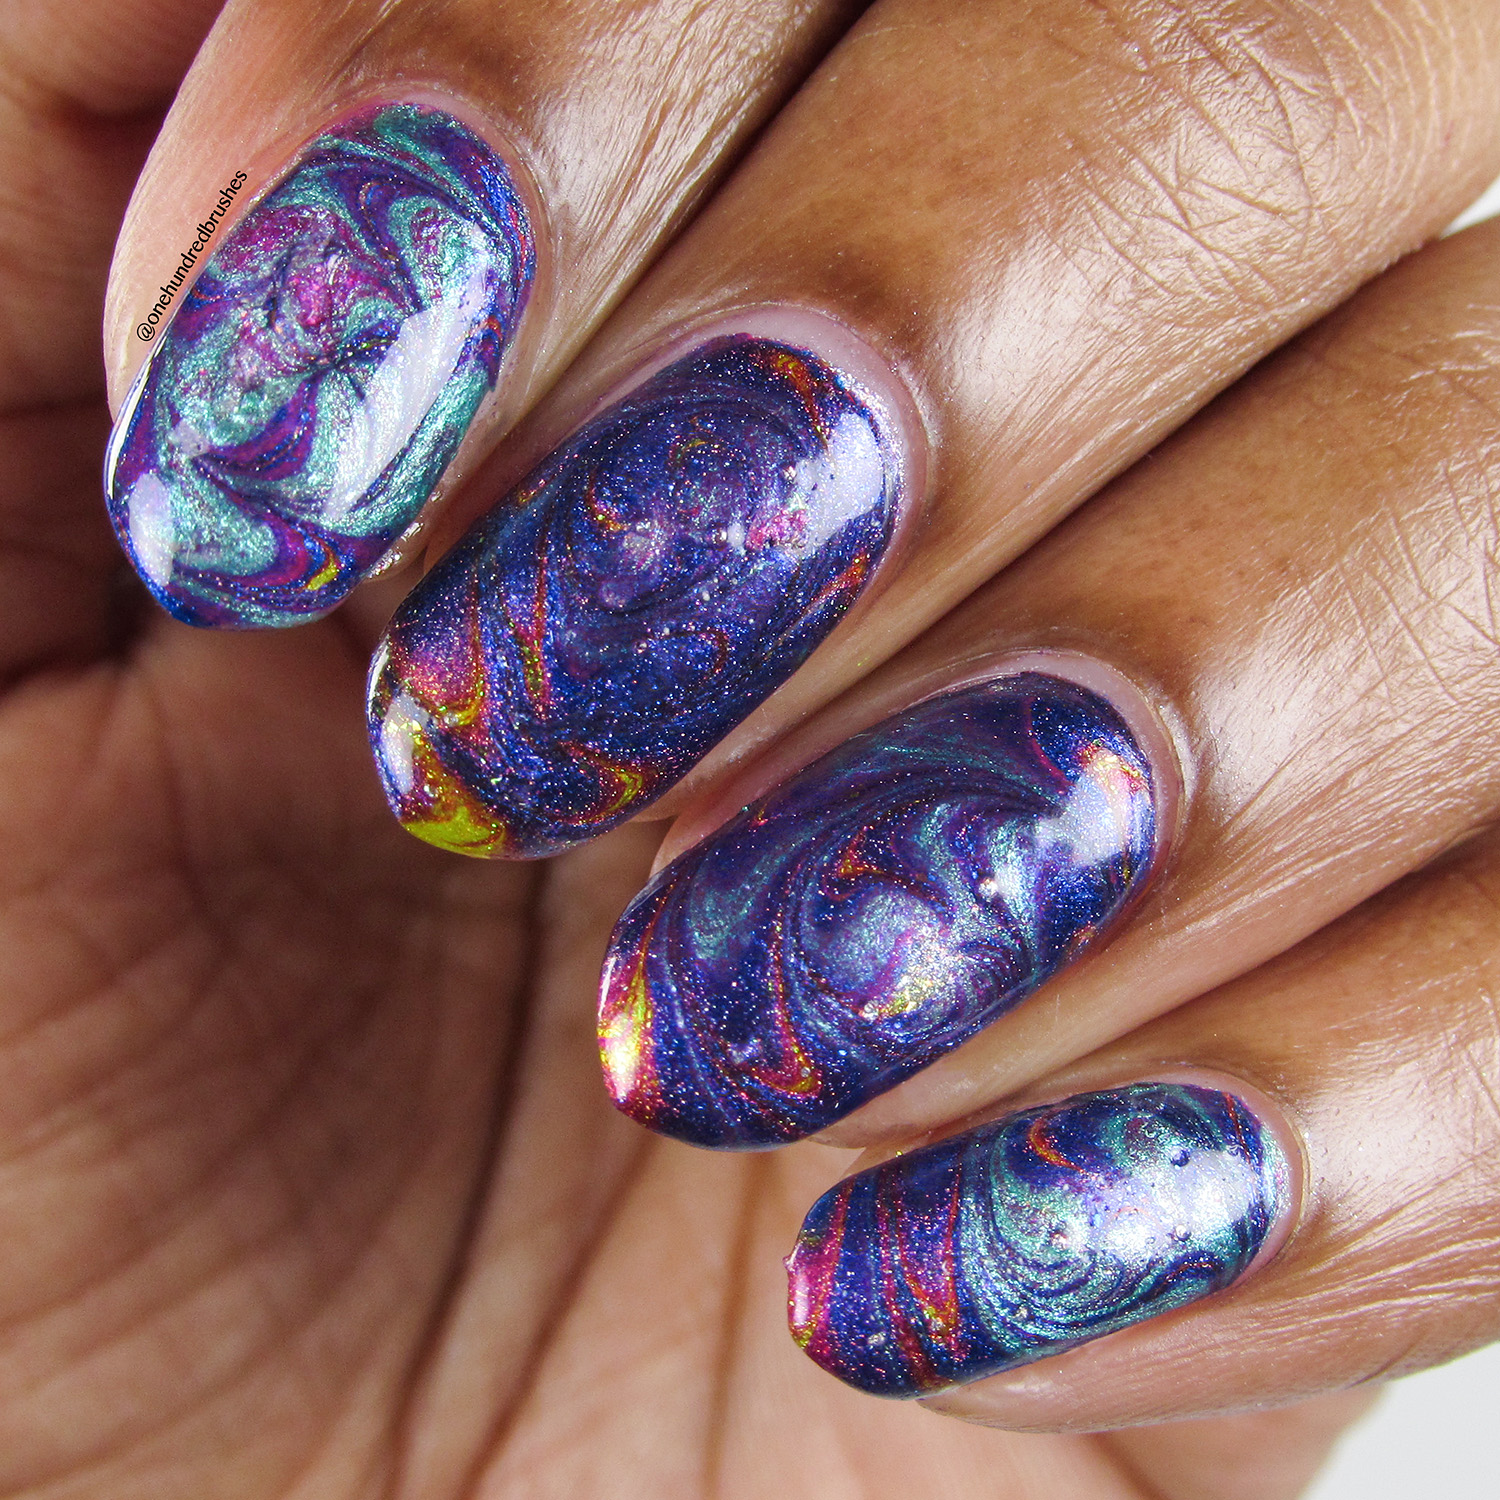 Swirl Watermarble - closeup - Vapid - April 2018 Spring Release - shimmer - holographic